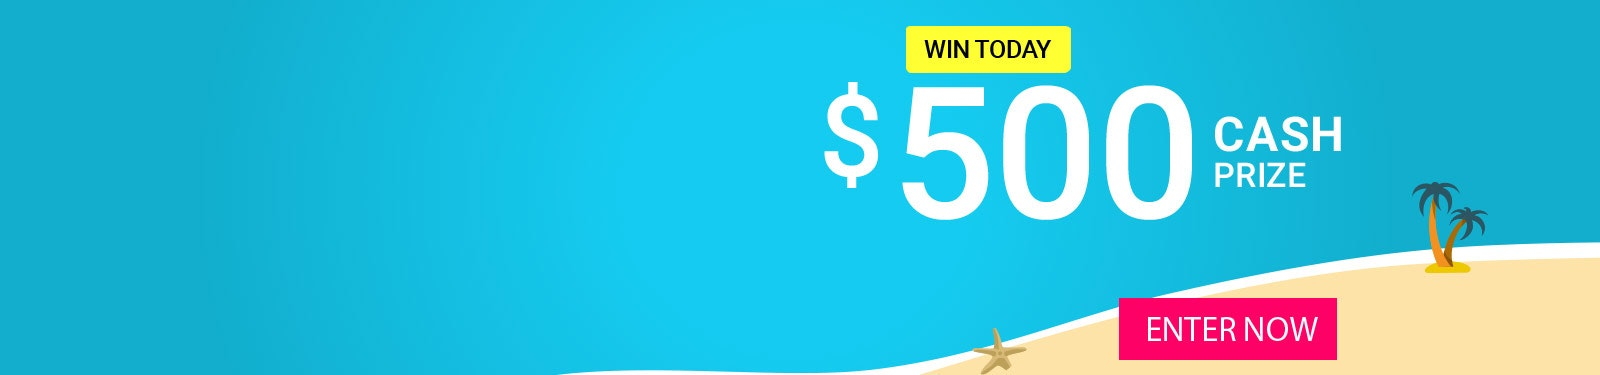 Prize of the Day 9-3 - $500 Cash sweepstakes